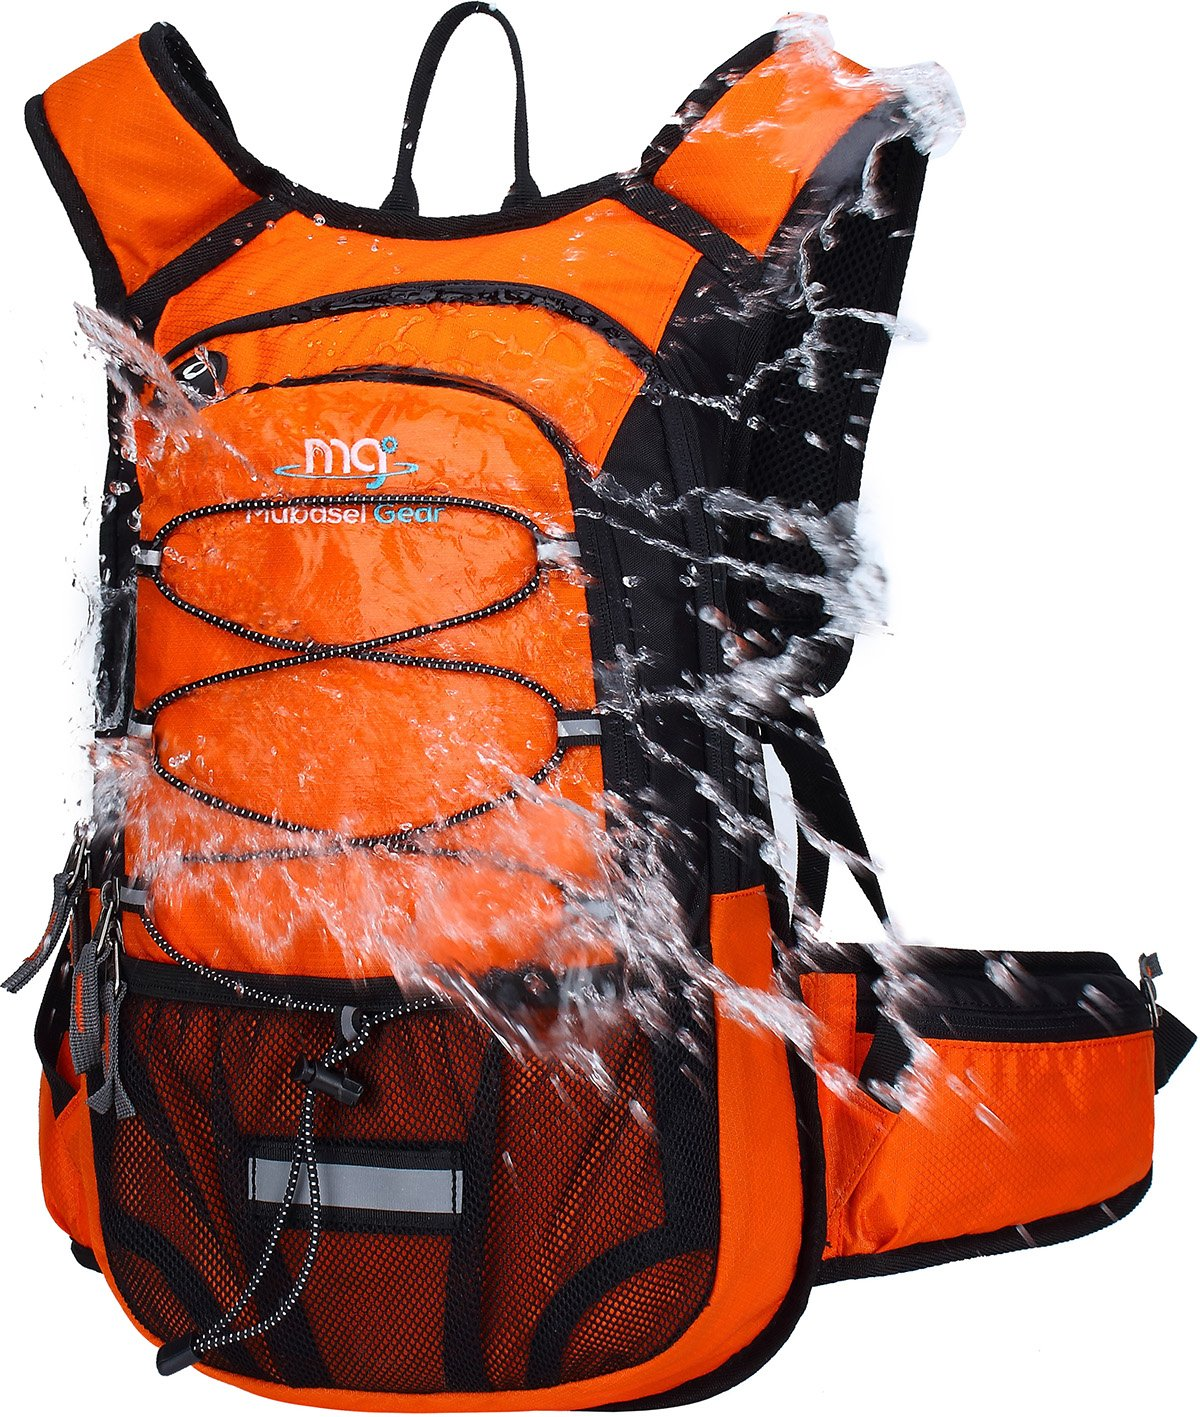 Mubasel Gear Insulated Hydration Backpack Pack with 2L BPA Free Bladder - Keeps Liquid Cool up to 4 Hours - for Running, Hiking, Cycling, Camping (Orange) by Mubasel Gear